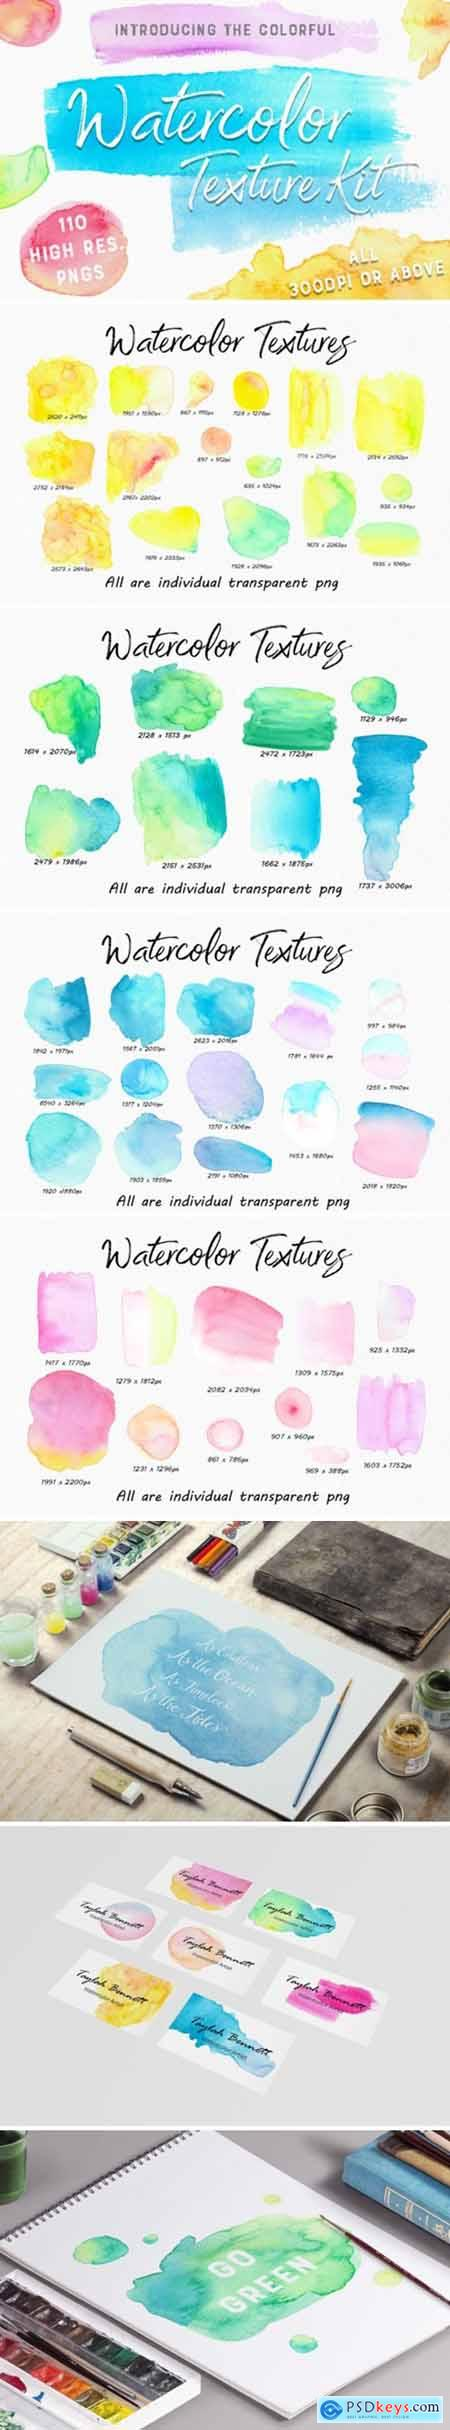 The Colourful Watercolour Kit 1738445